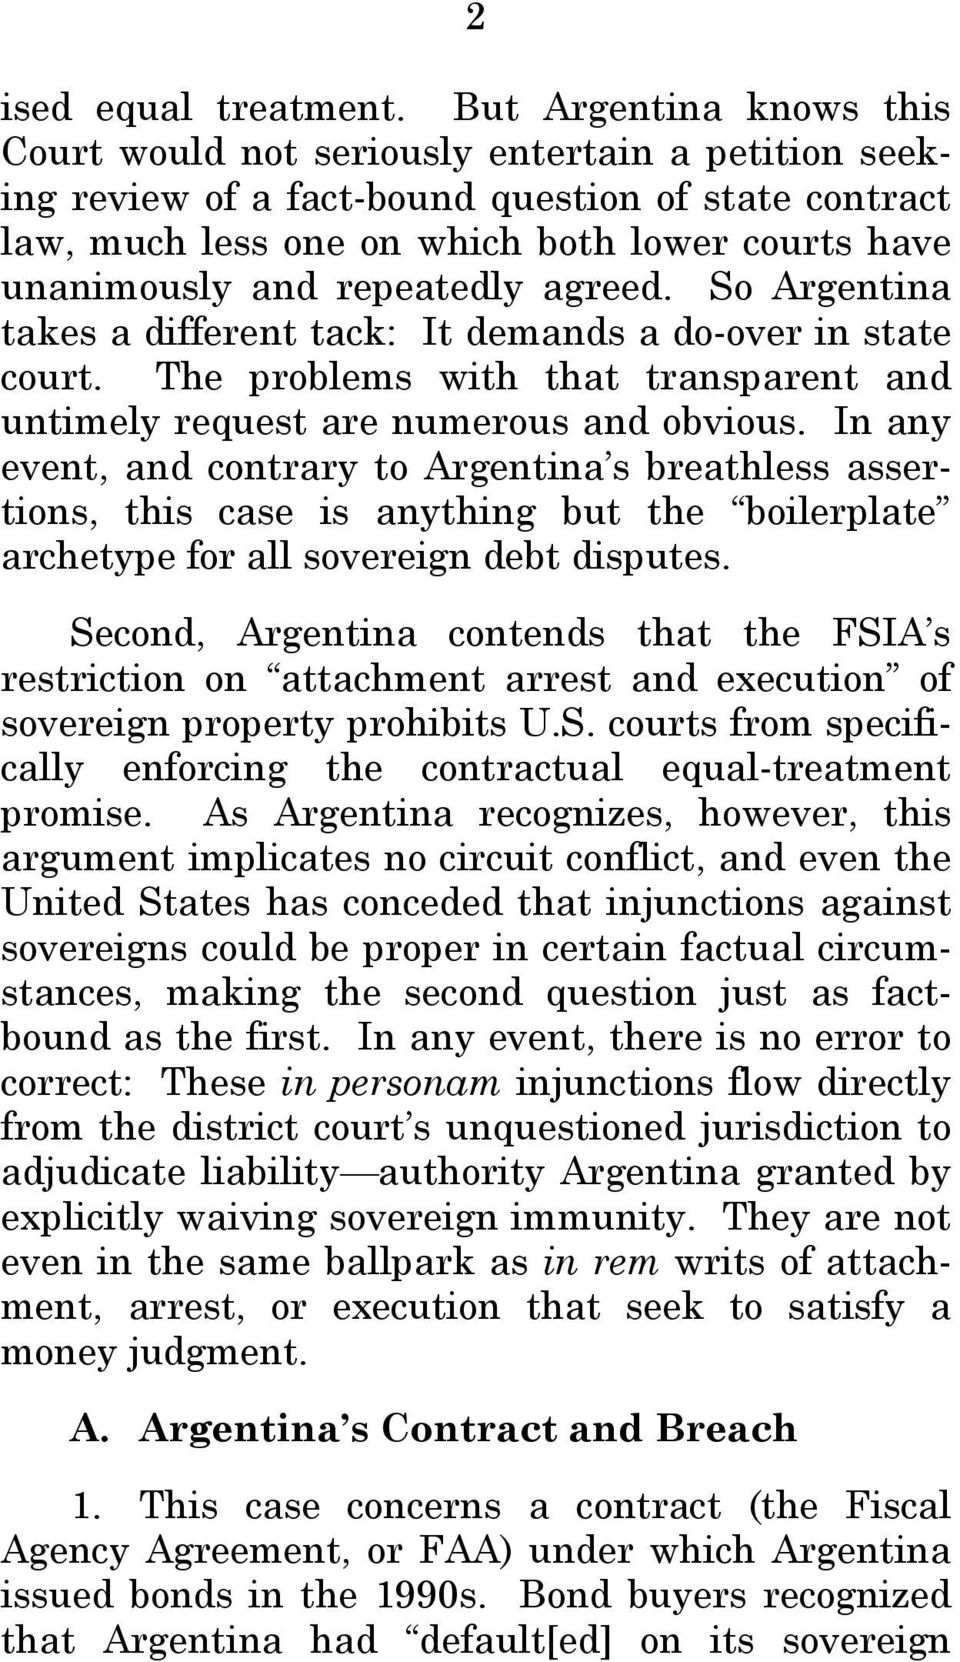 repeatedly agreed. So Argentina takes a different tack: It demands a do-over in state court. The problems with that transparent and untimely request are numerous and obvious.